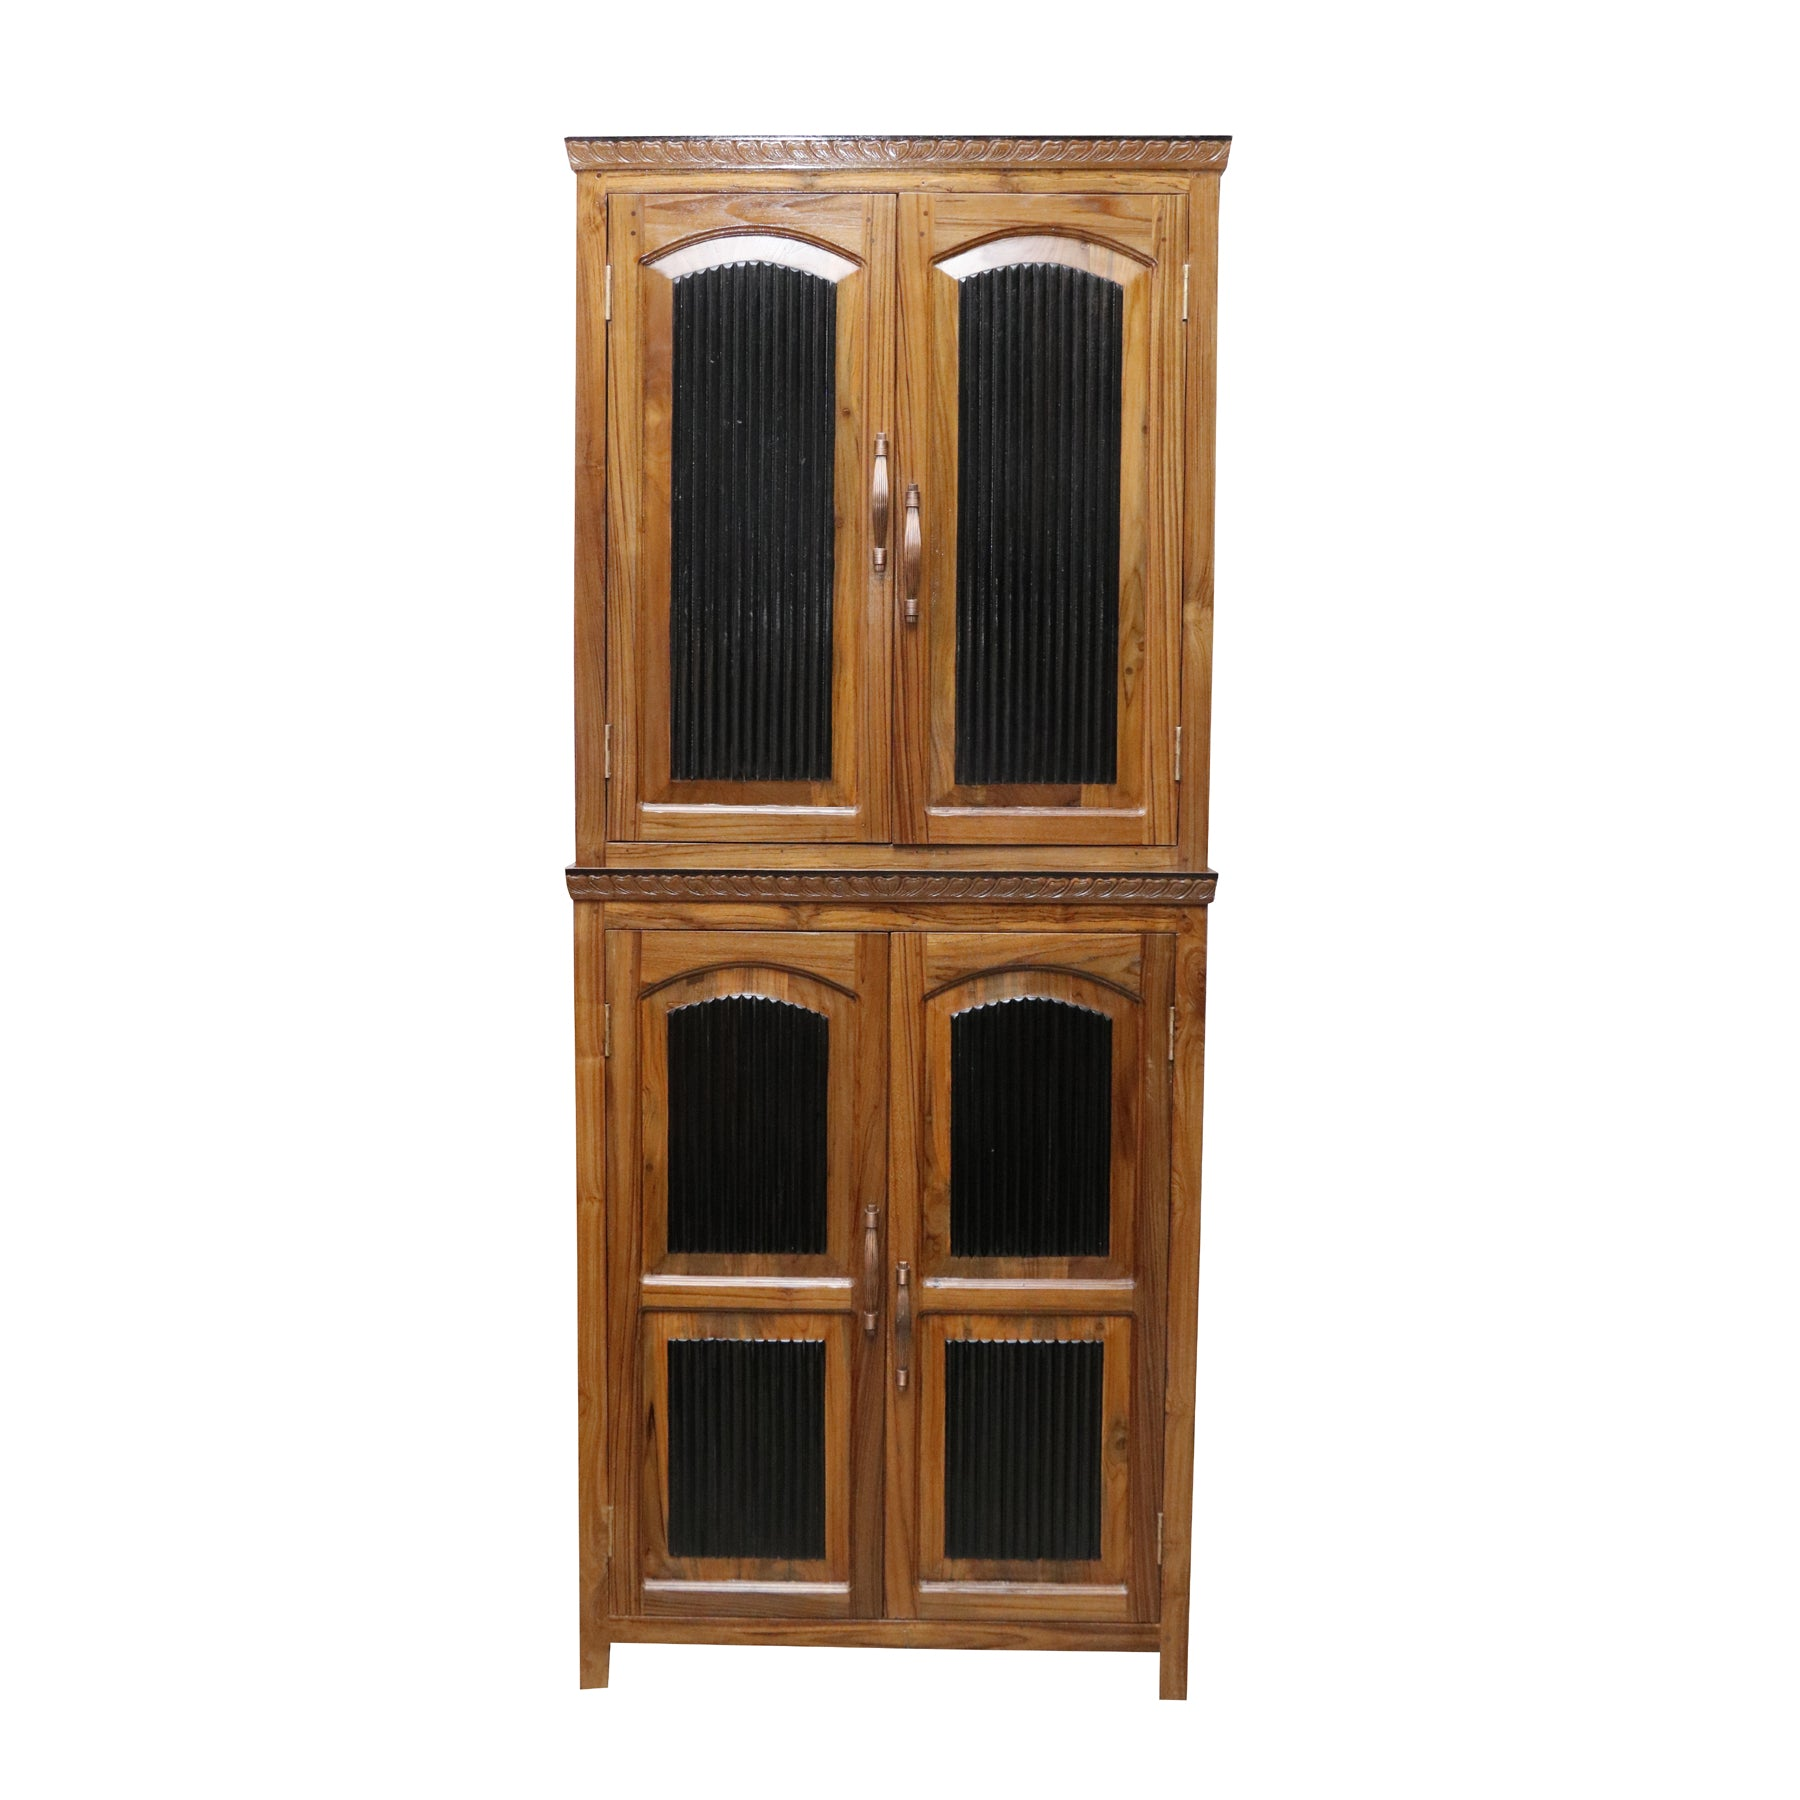 Stylish Wooden Display Cabinet with 2-Compartments